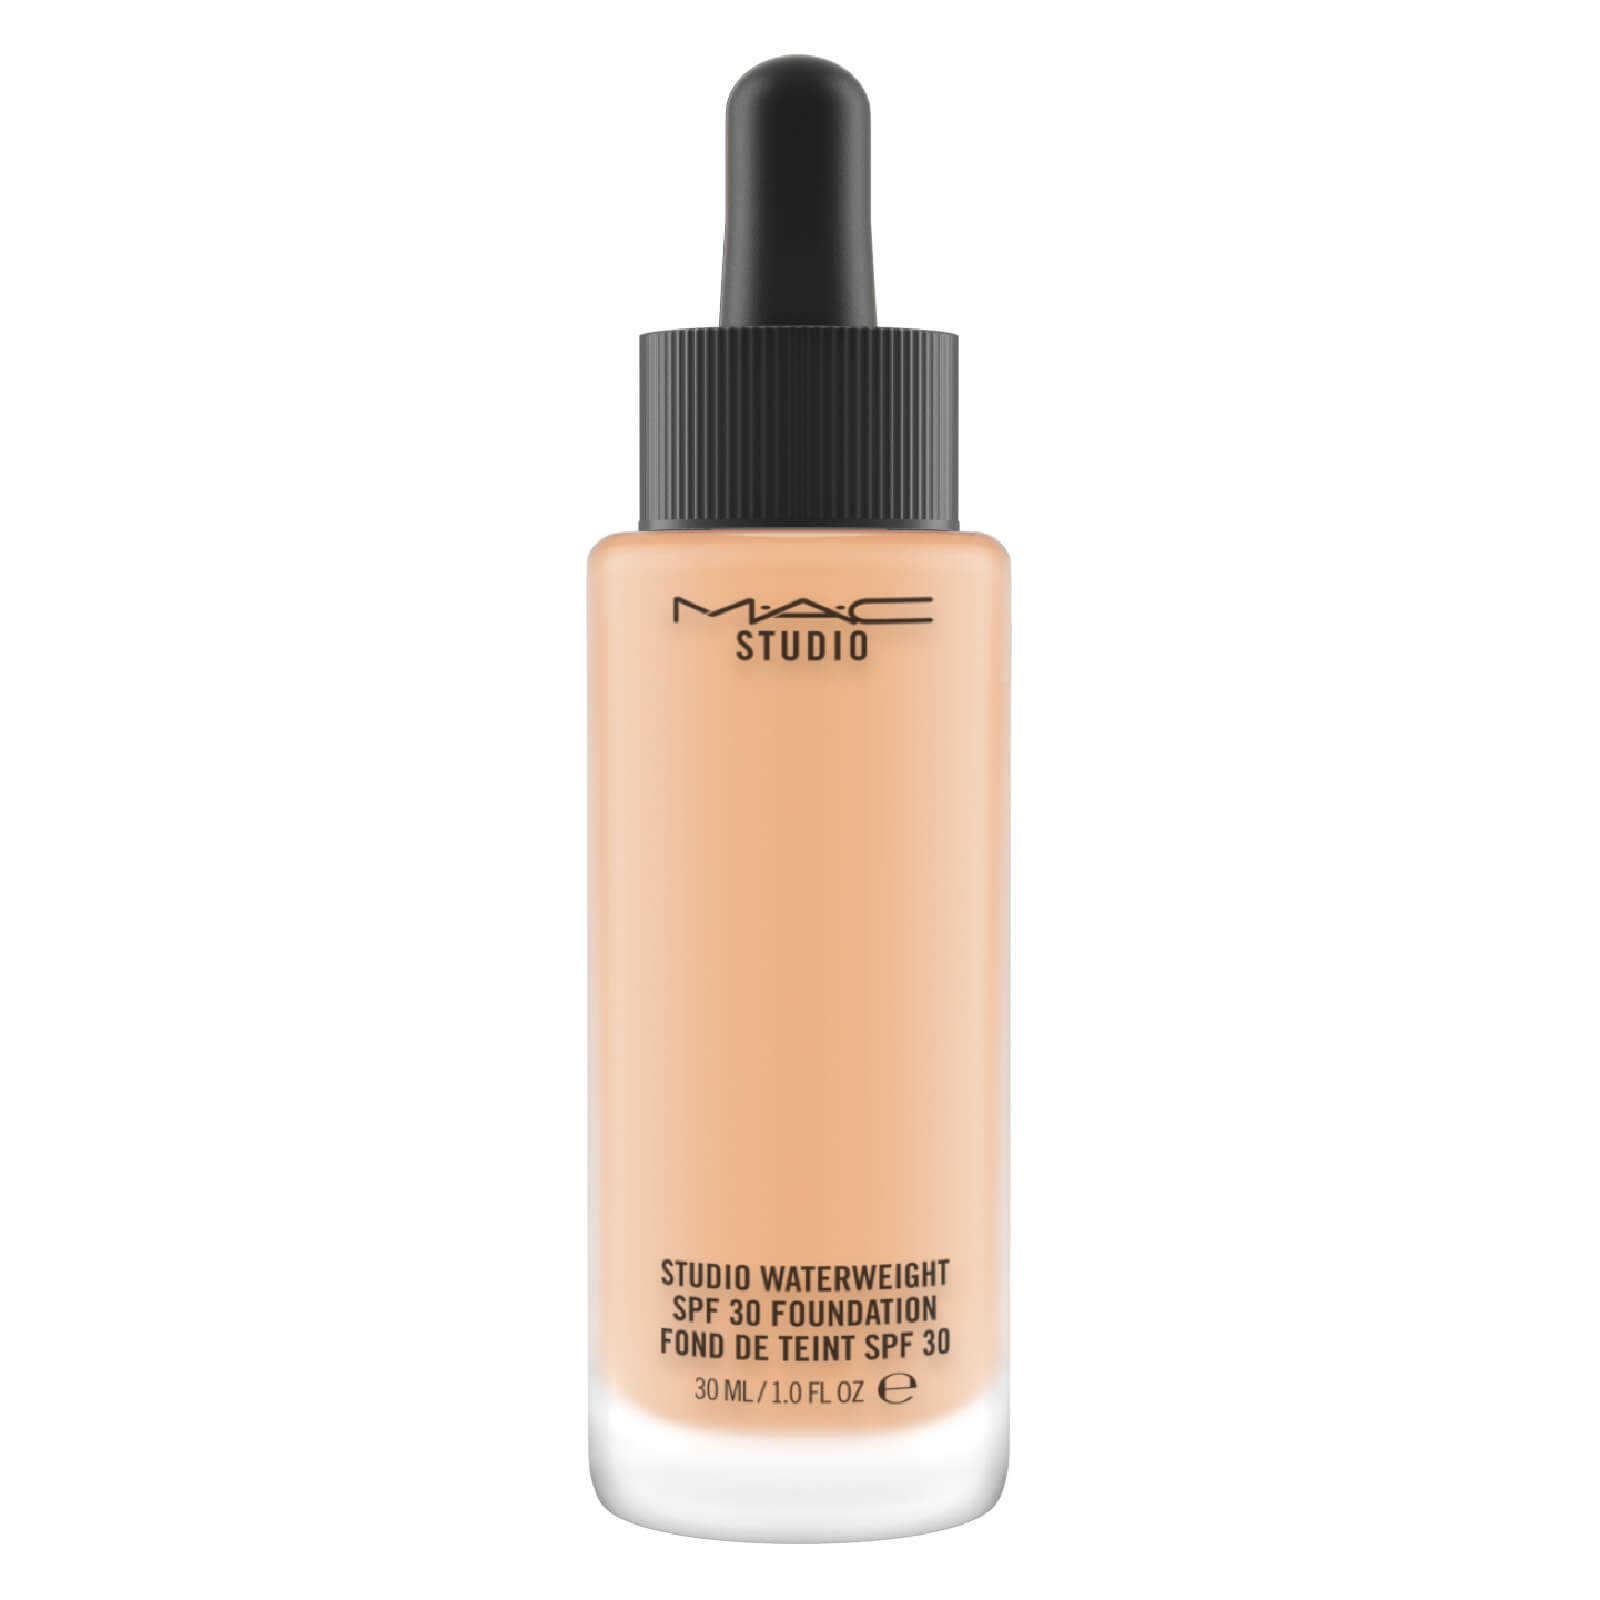 Base de maquillaje Studio Waterweight SPF 30 Foundation M.A.C